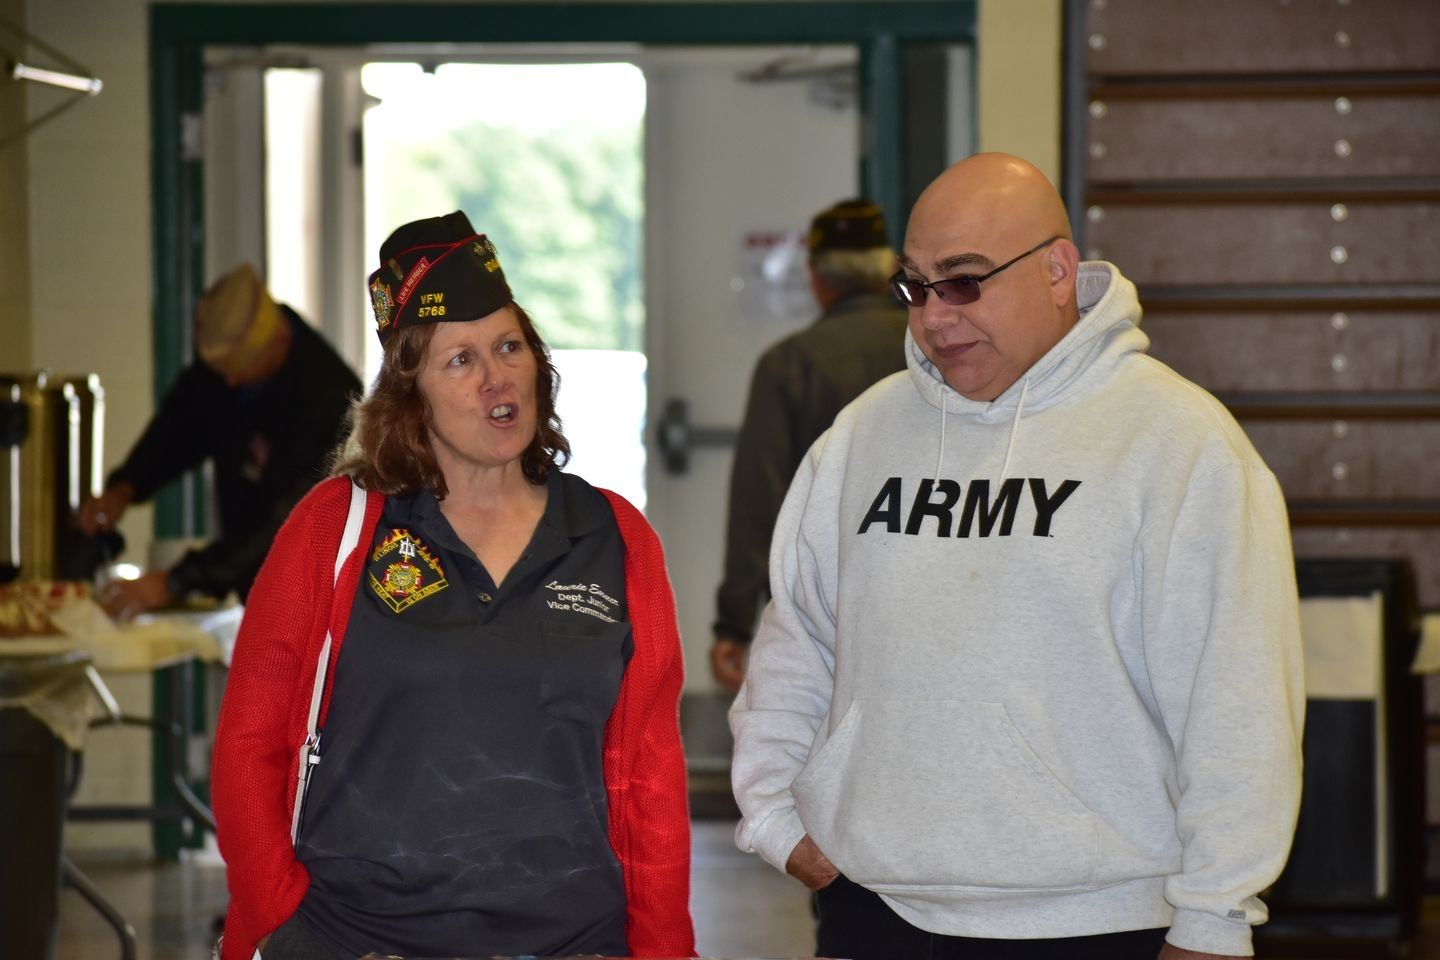 Laurie Emmer, Department Illinois VFW Jr Vice Commander, talks with District 3 Sr Vice Commander Chris Garza.